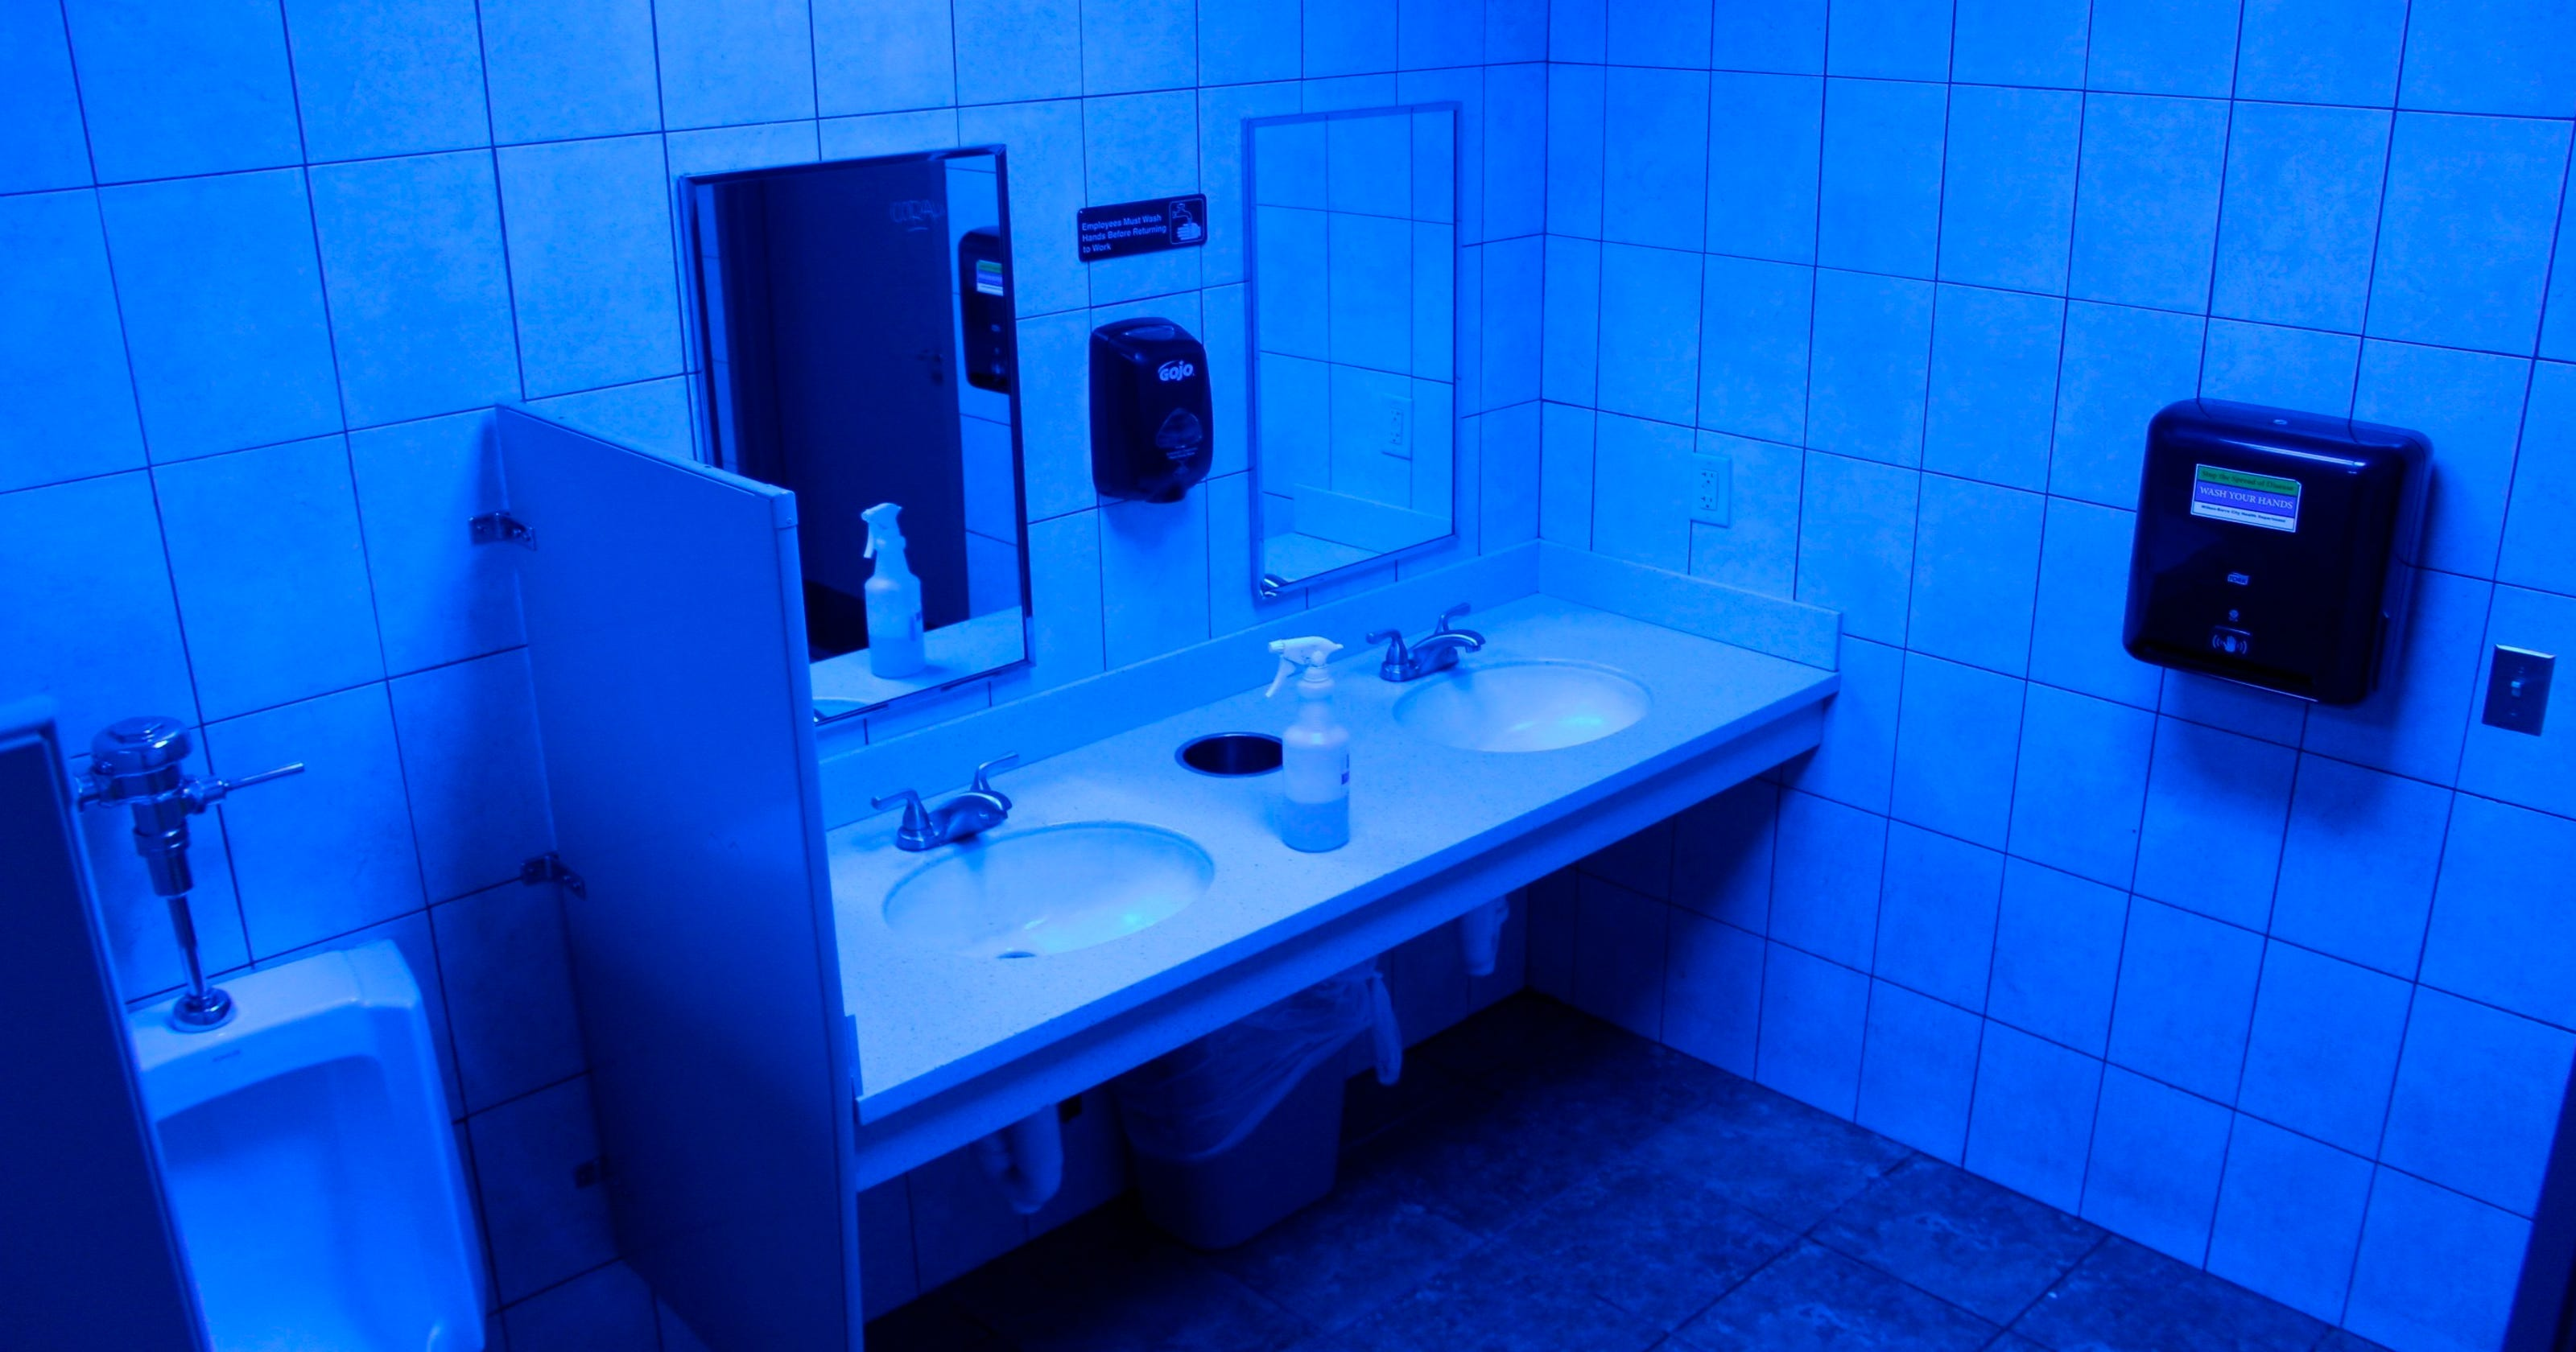 Retailers testing blue lights to ward off drug users